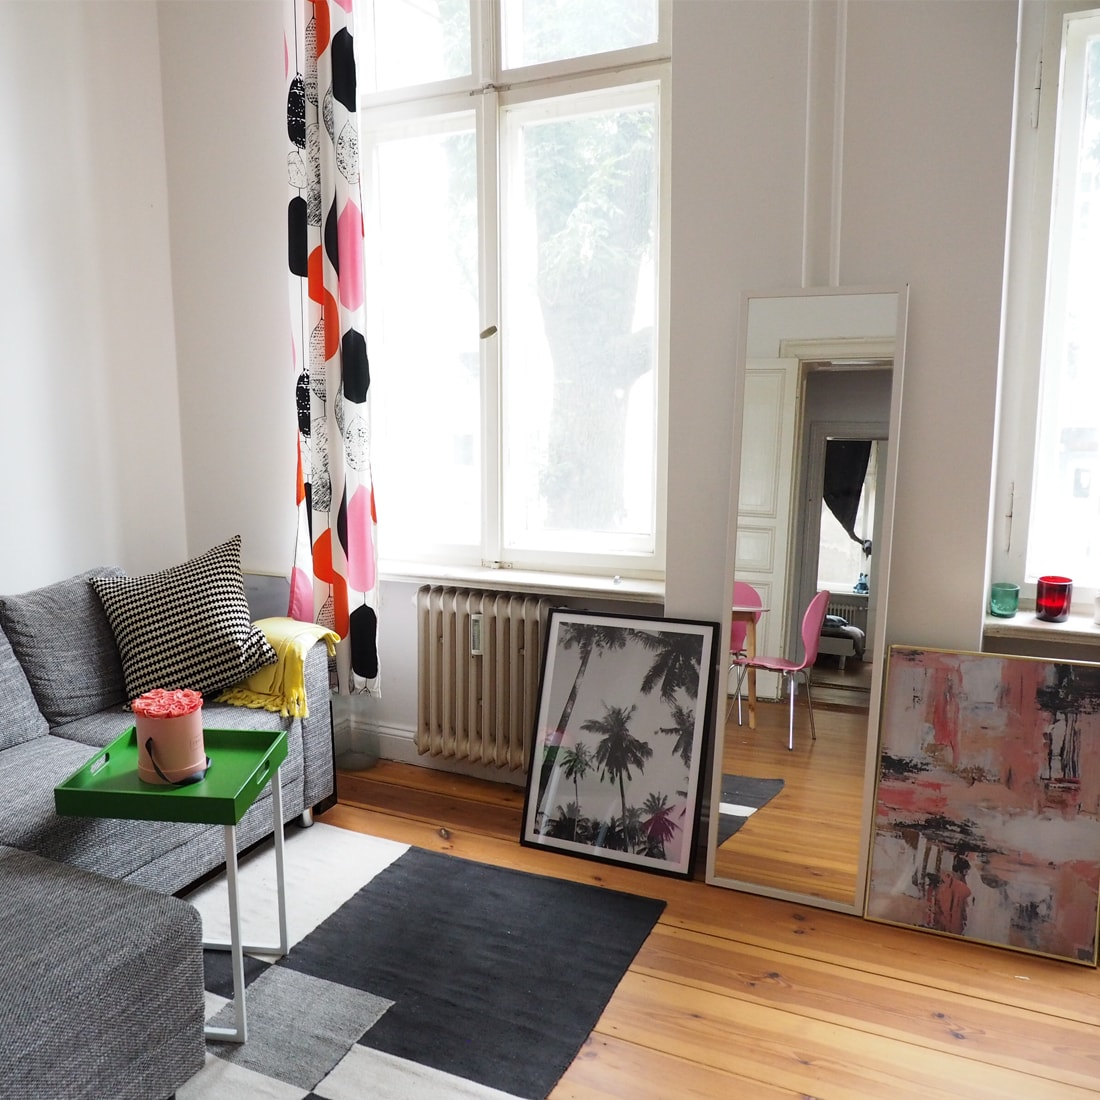 If You Also Want To Give Your House A New Look, The Code U201clesberlinettesu201d  Gives 25% Off Posters,(except U201chandpickedu201d/frames), Between 5th 7th Of  September.